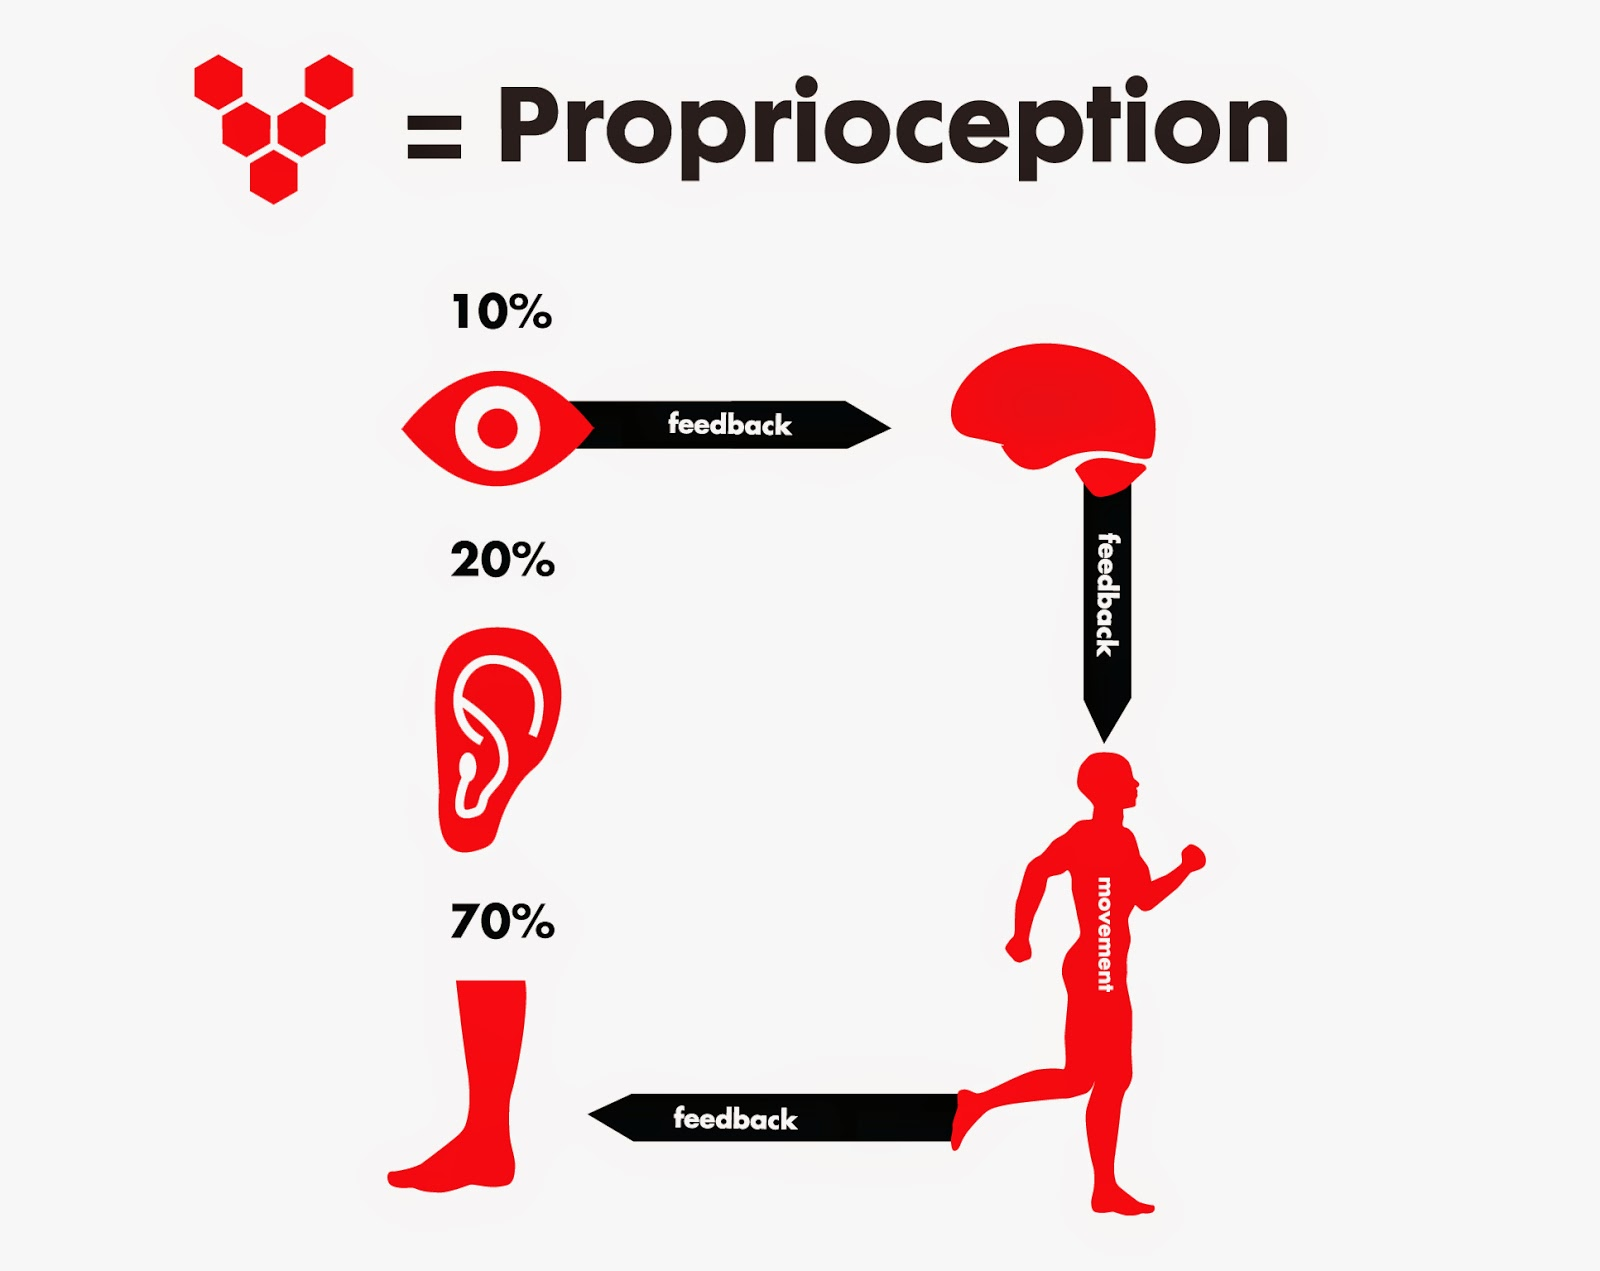 http://en.wikipedia.org/wiki/Proprioception